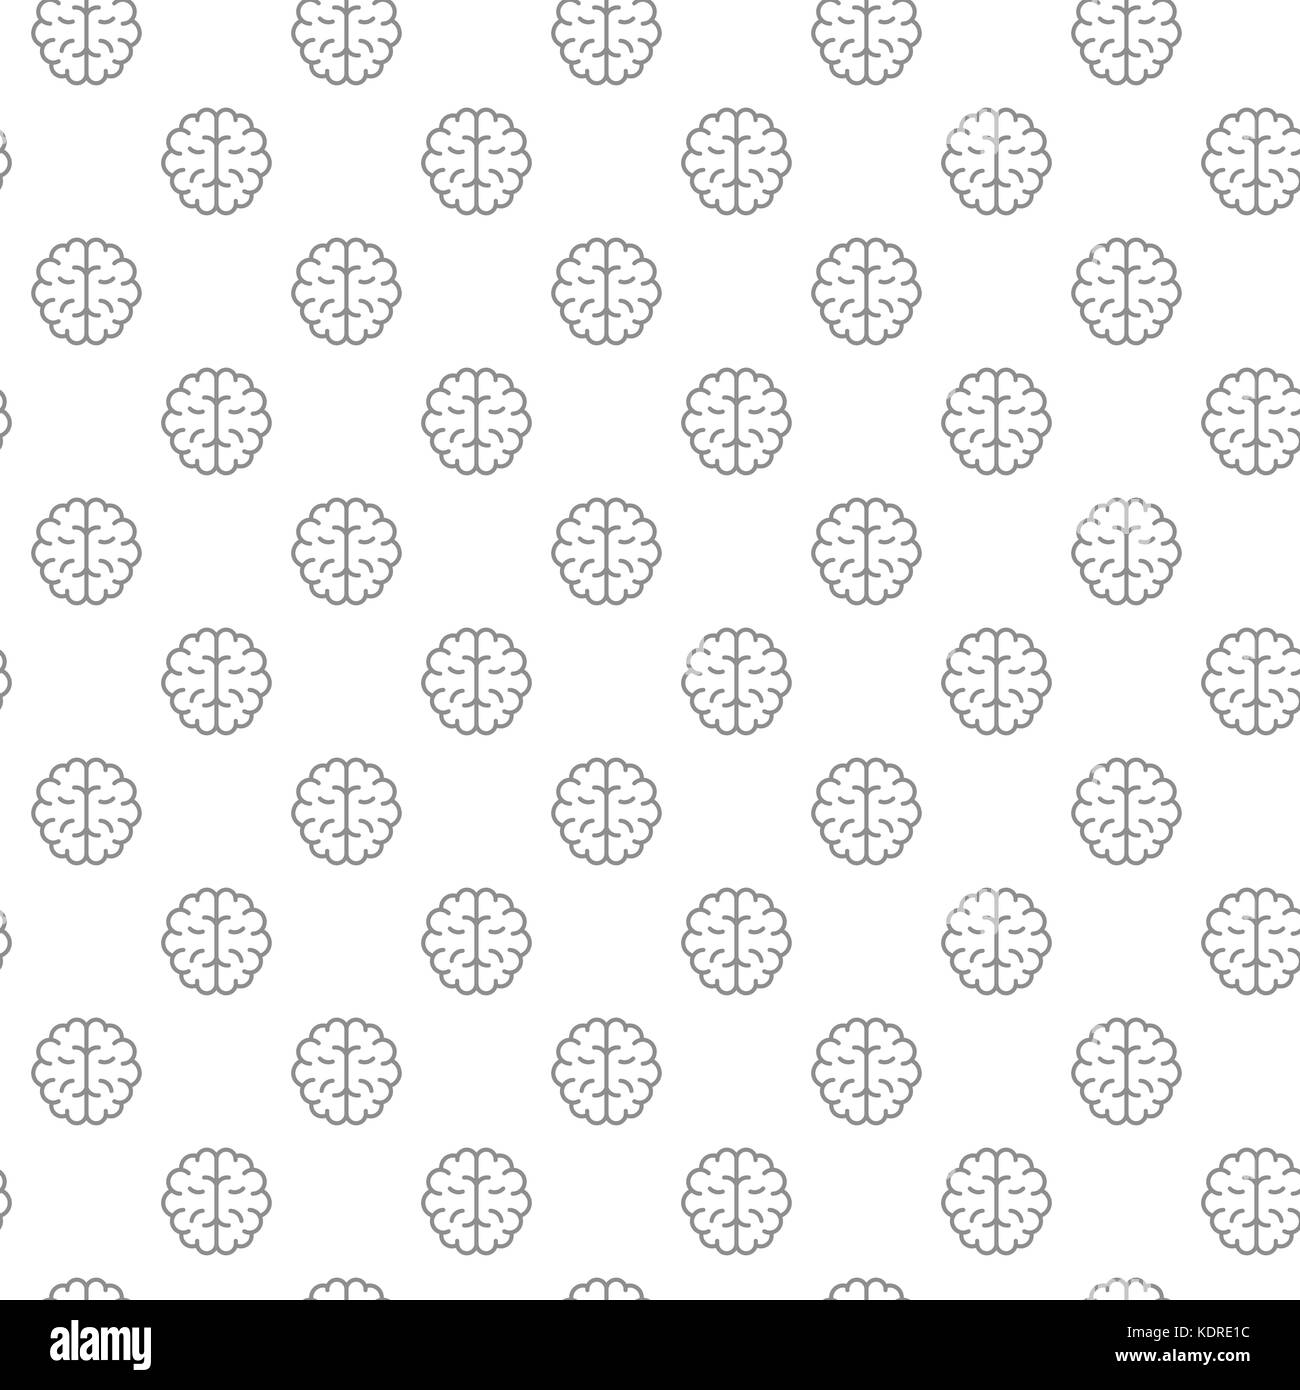 Unique brain seamless pattern with various icons and symbols on white background flat vector illustration - Stock Image